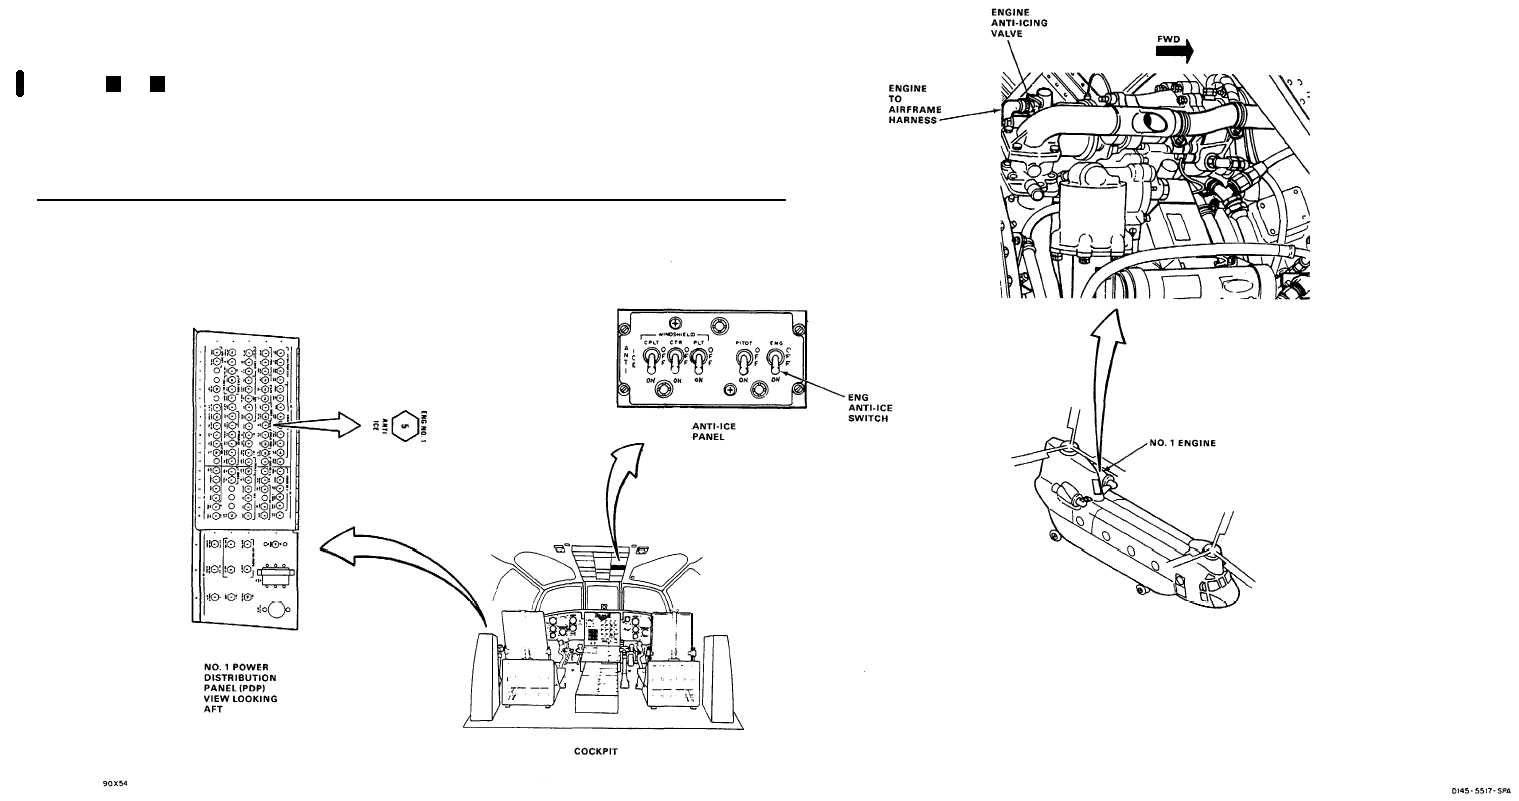 4-2.6 NO. 1 ENGINE ANTI-ICING VALVE DOES NOT OPERATE